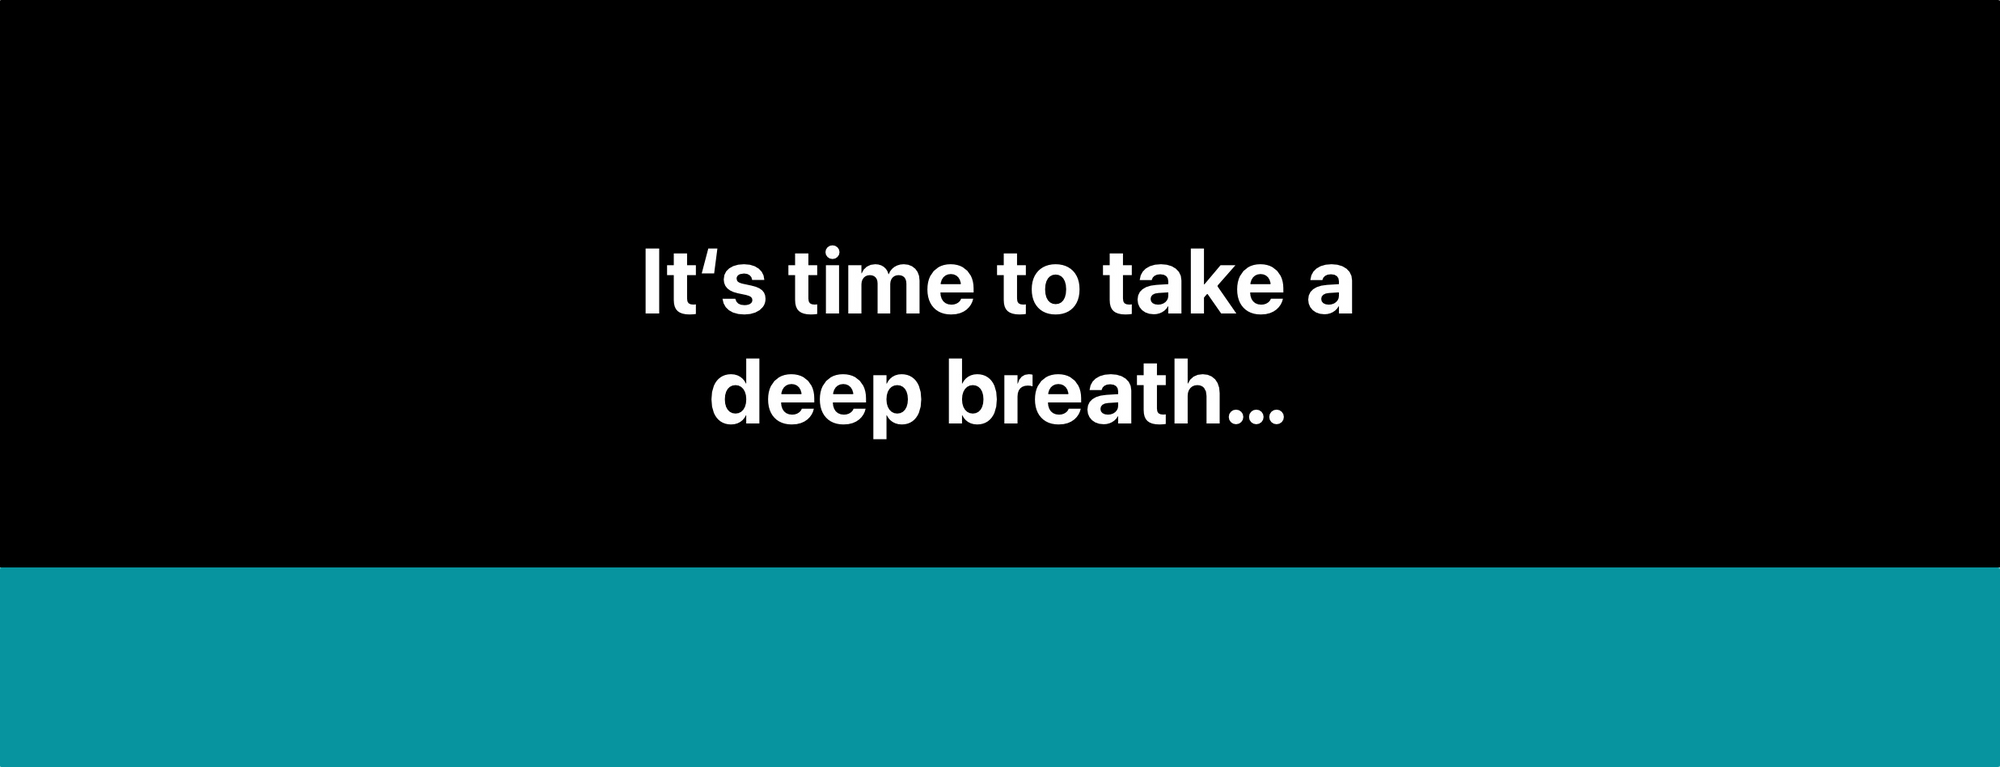 Instead of Launching Social Media Apps, Why Not Take a Deep Breath First?